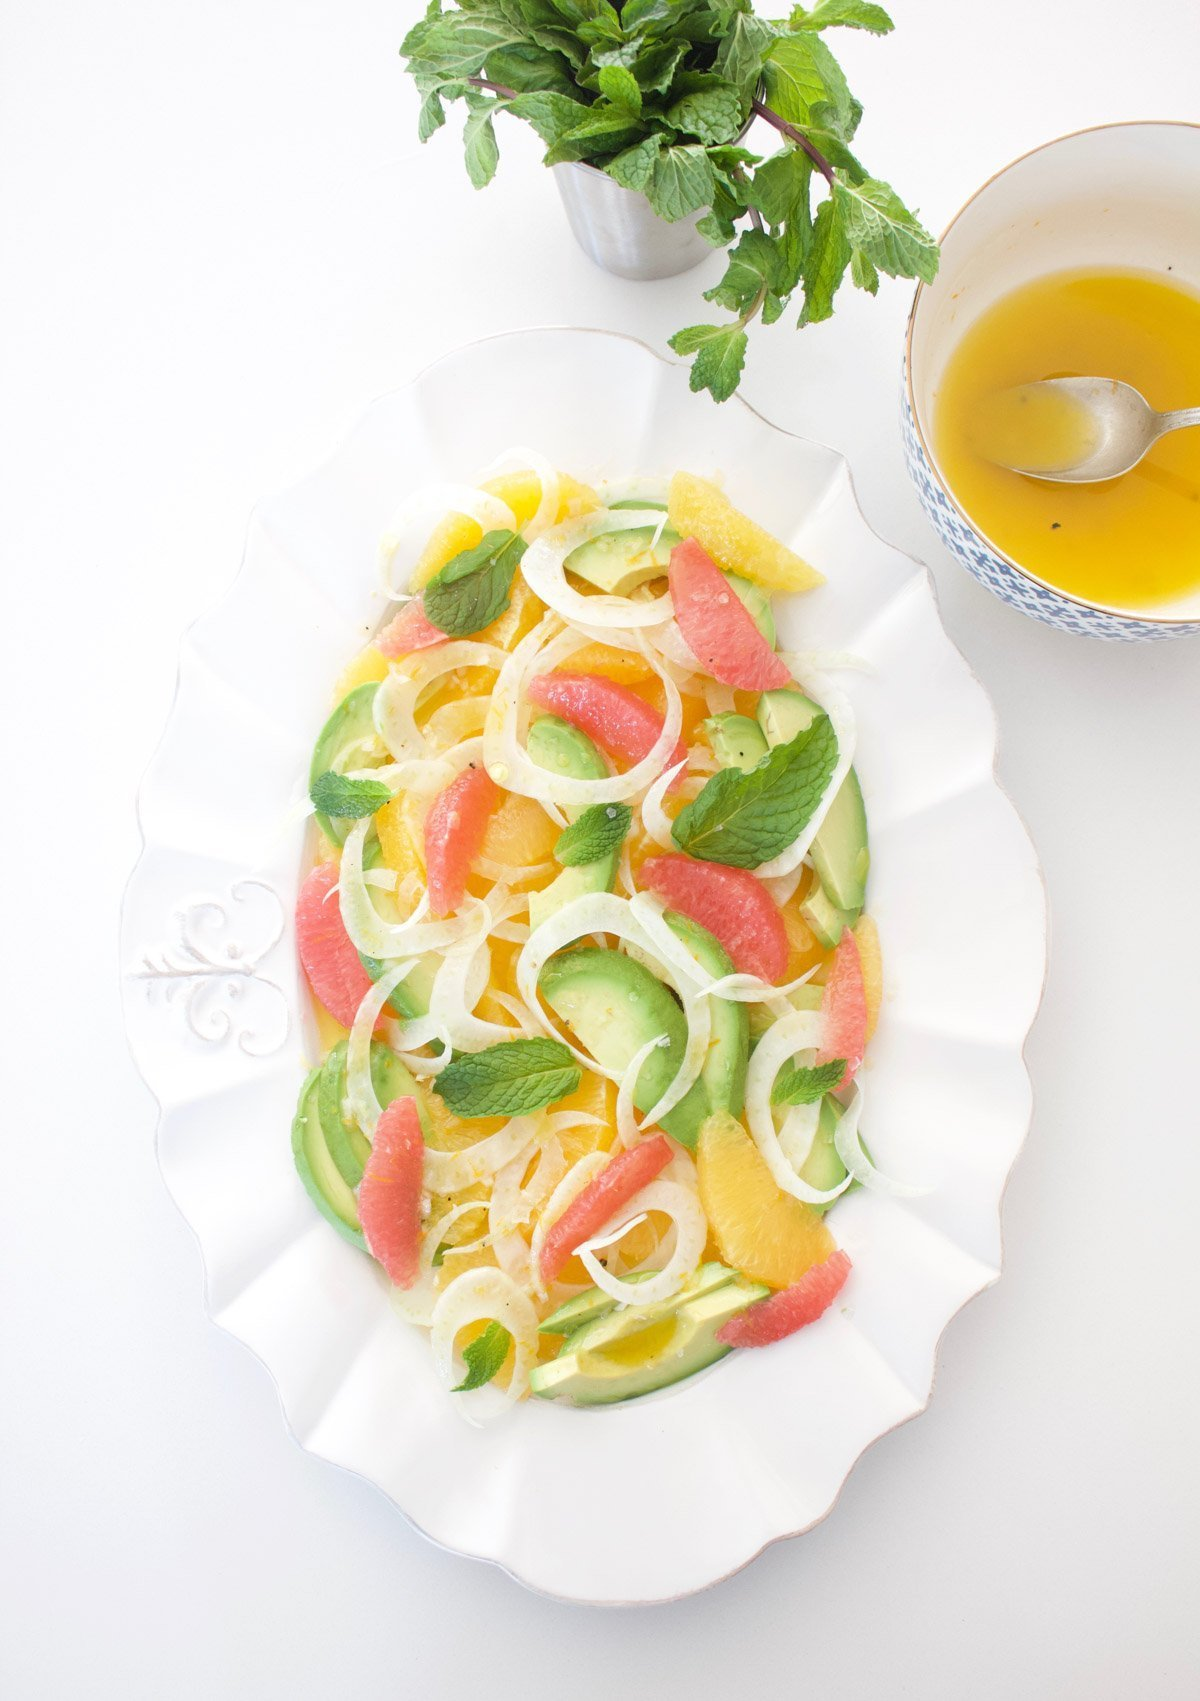 Citrus and avocado salad with a bowl of dressing on the side